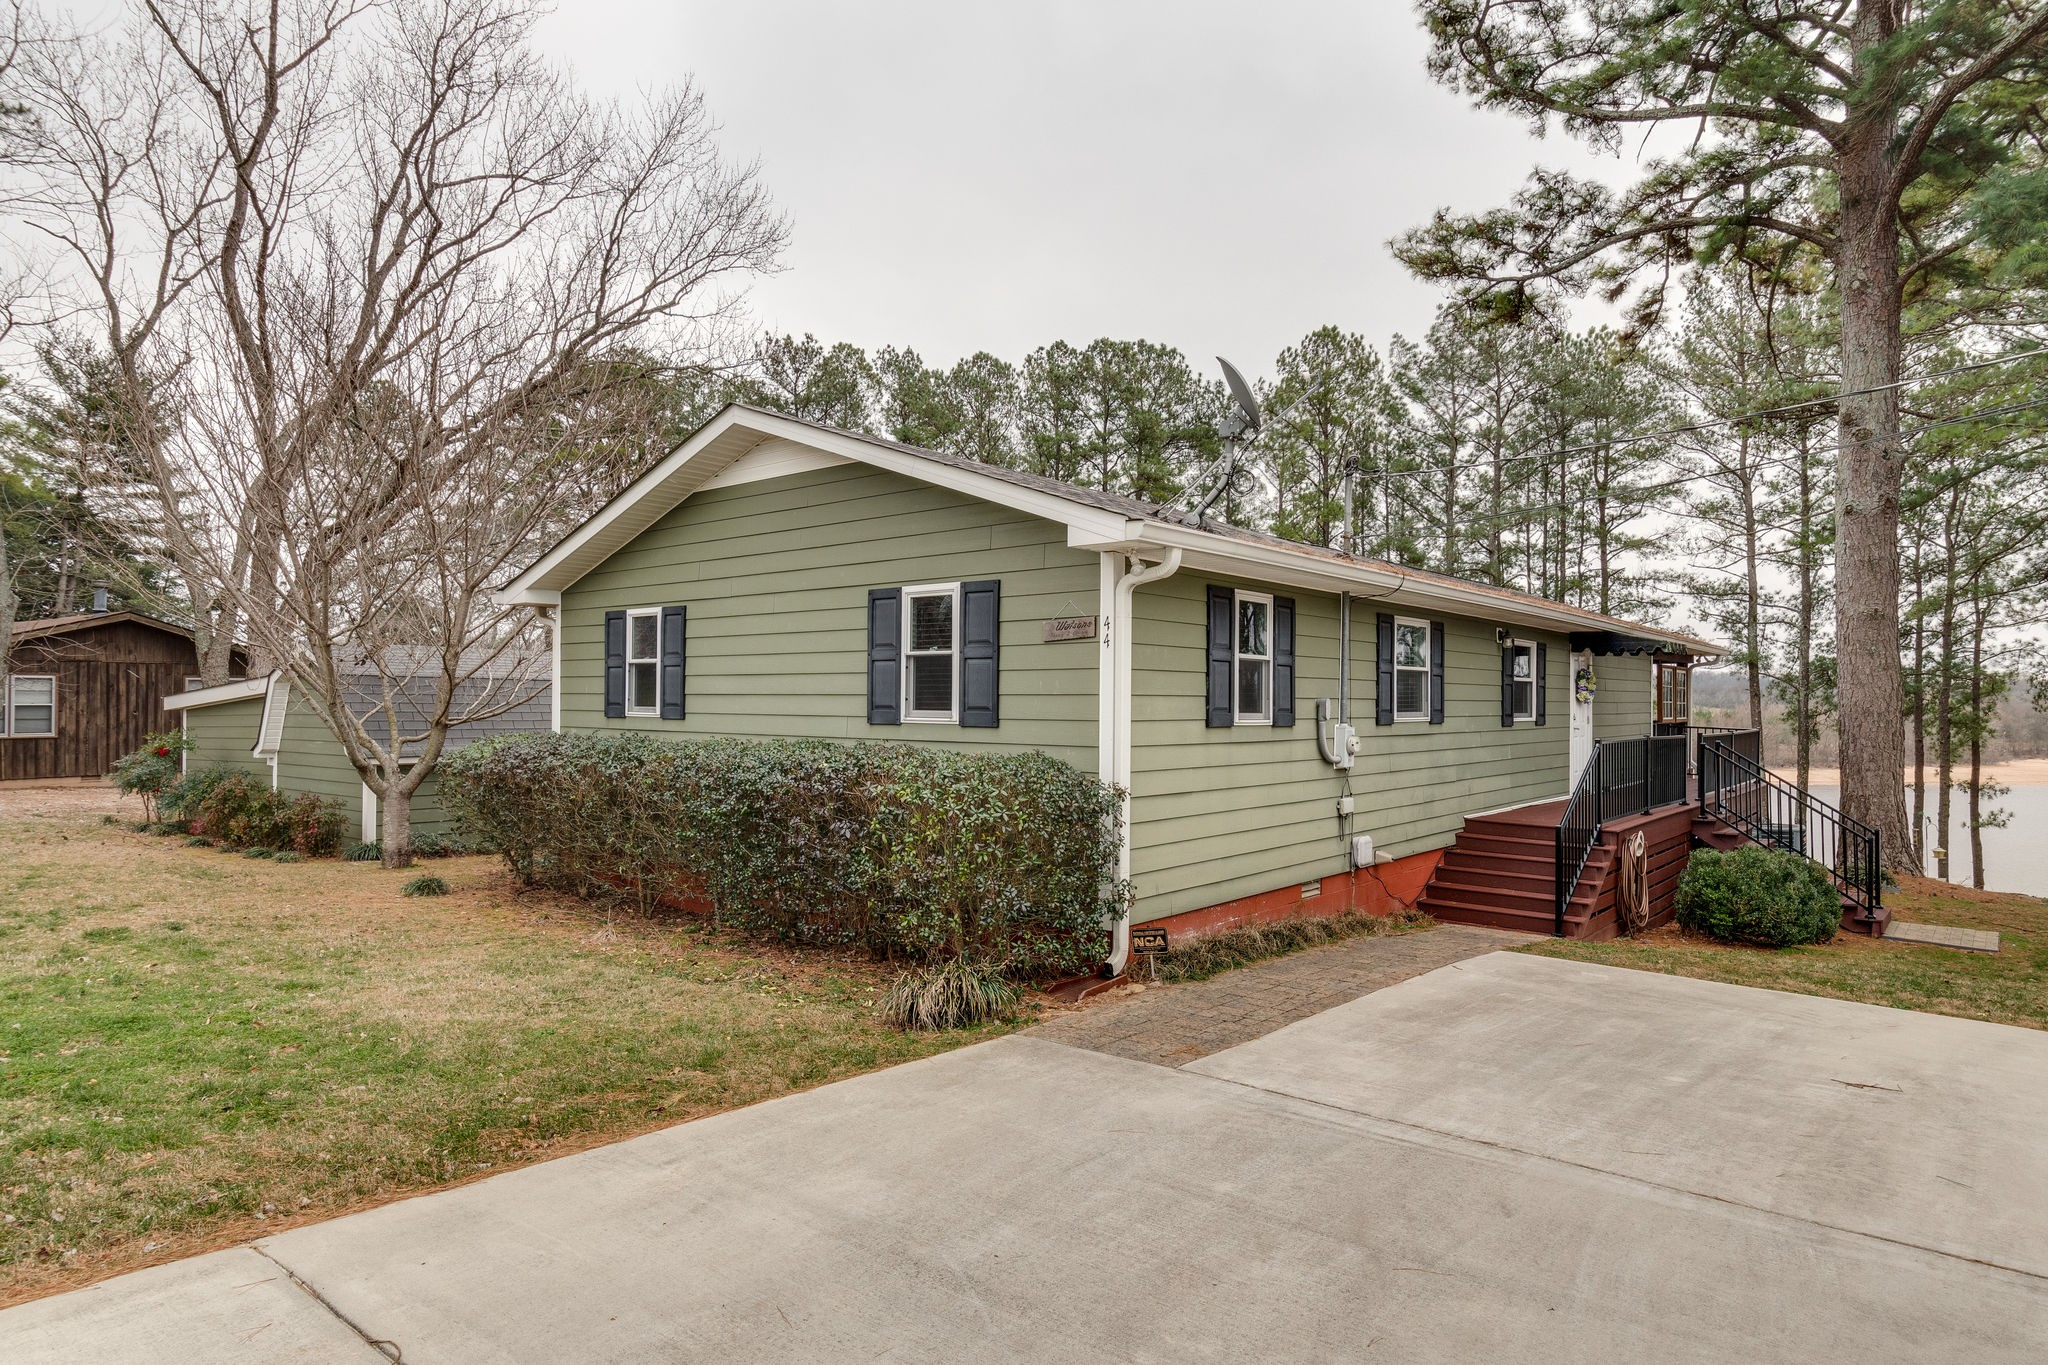 44 Acree Ln, Estill Springs, TN 37330 - Estill Springs, TN real estate listing